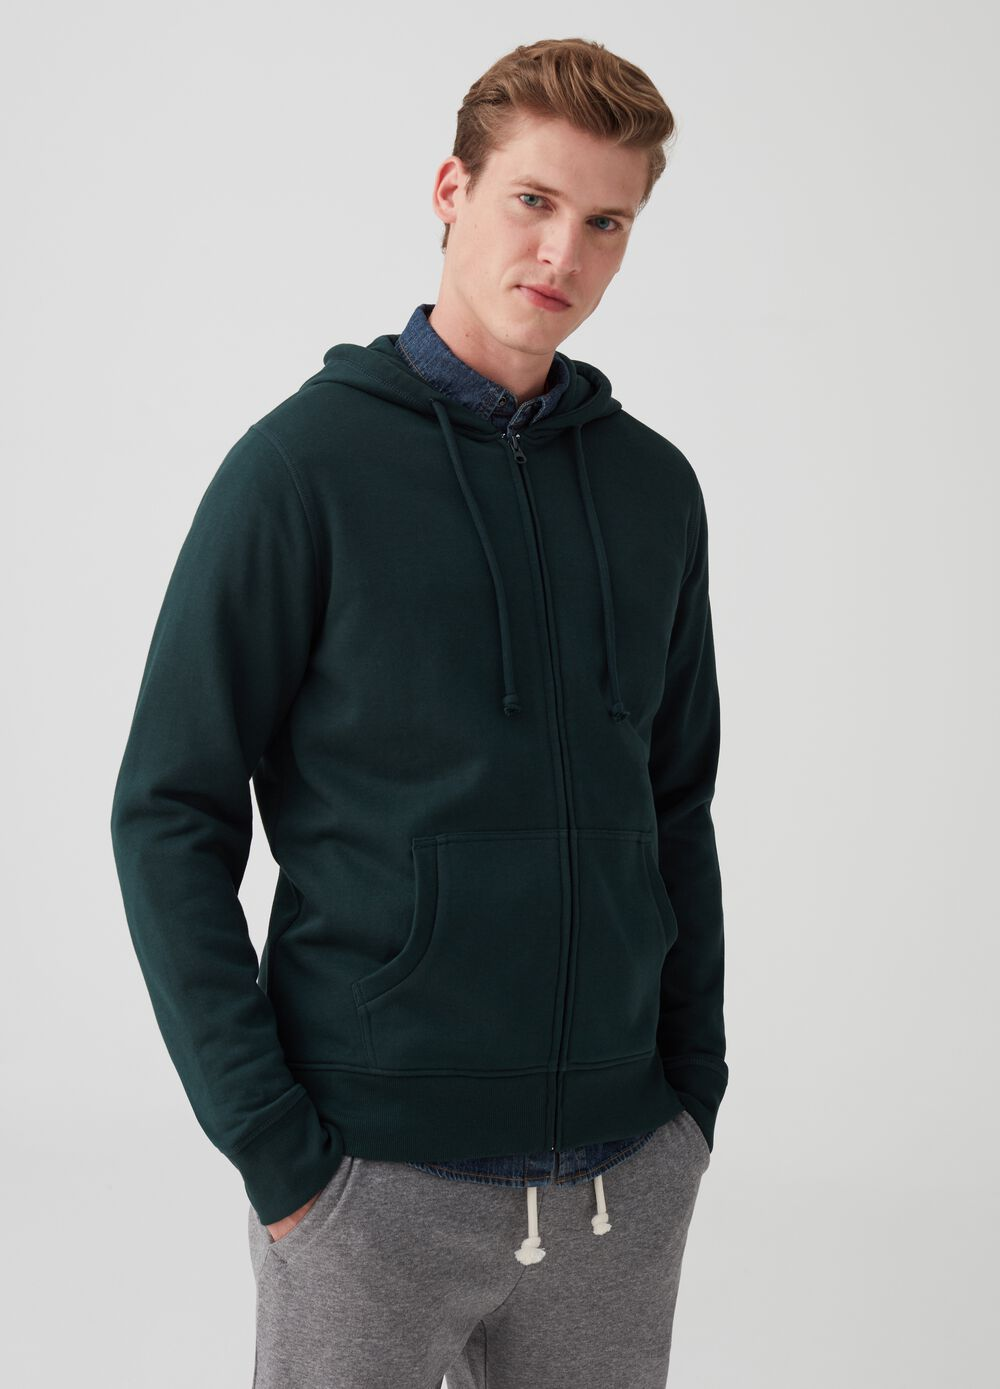 Sweatshirt with full-zip hood